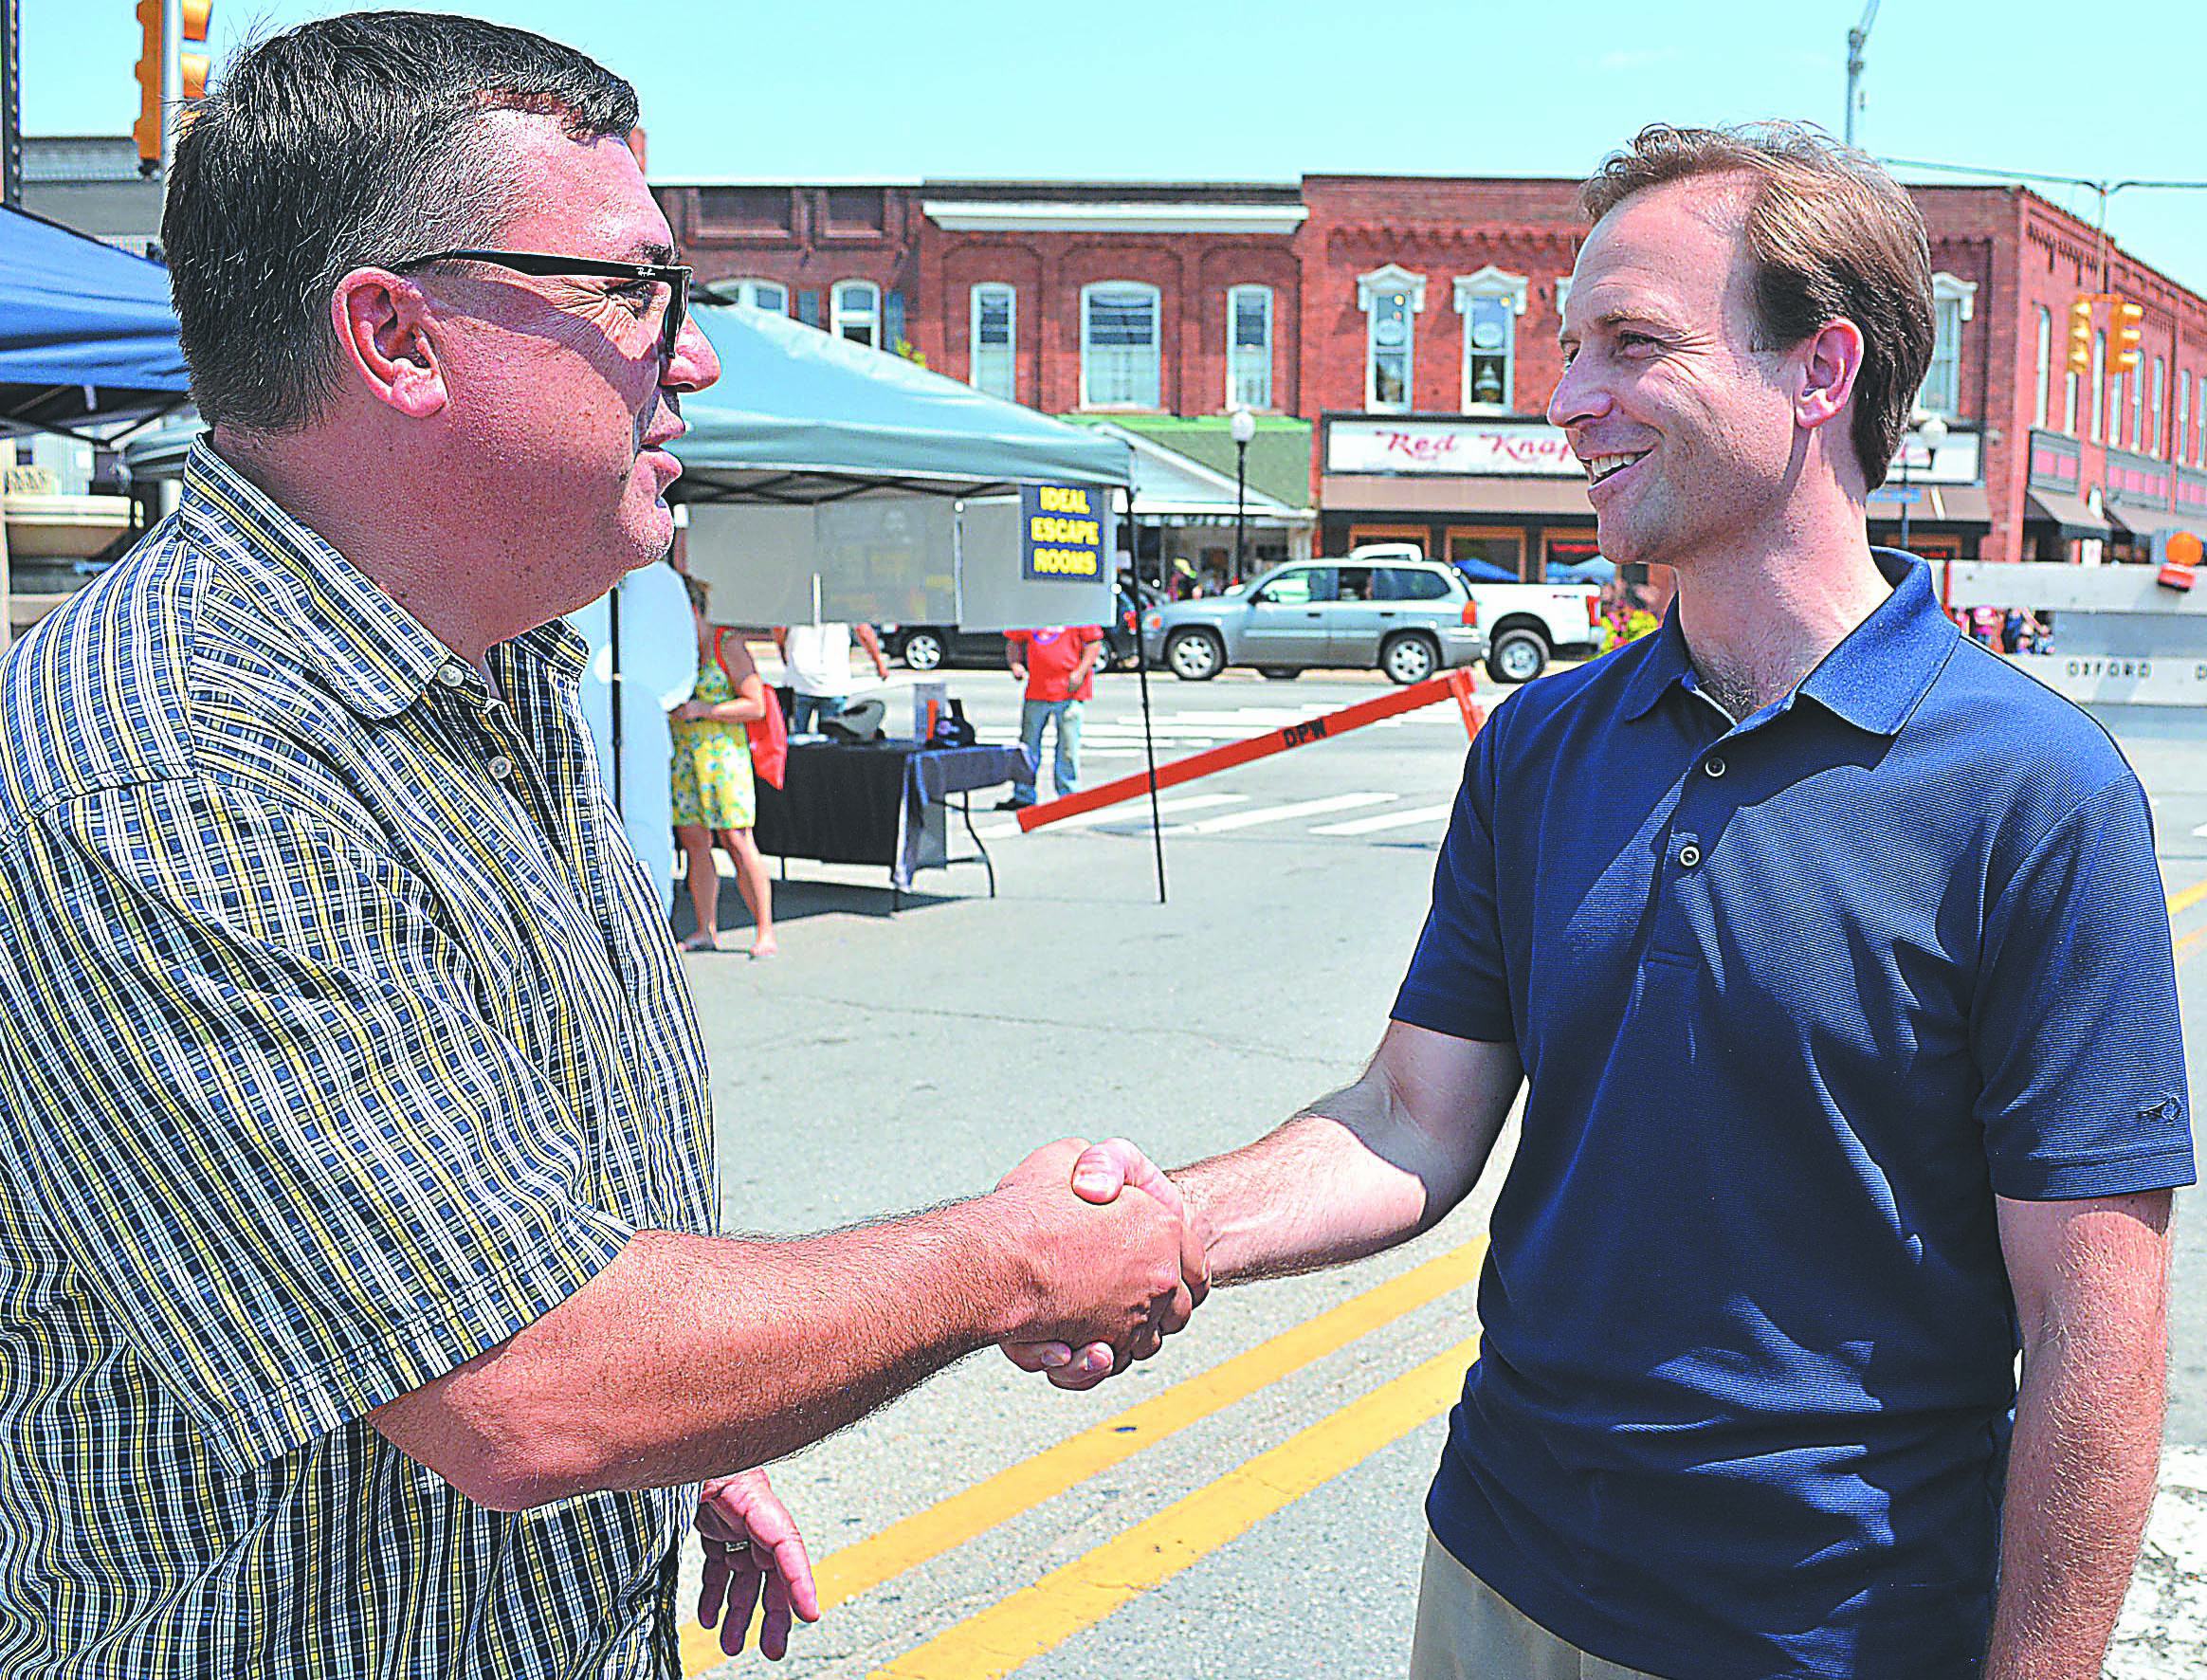 Lt. Gov. Brian Calley (right) shakes hands with Orion Twp. resident Tony Albensi Saturday during the Lone Ranger Festival in downtown Oxford. Albensi is a former Oxford Village councilman. Photo by C.J. Carnacchio.